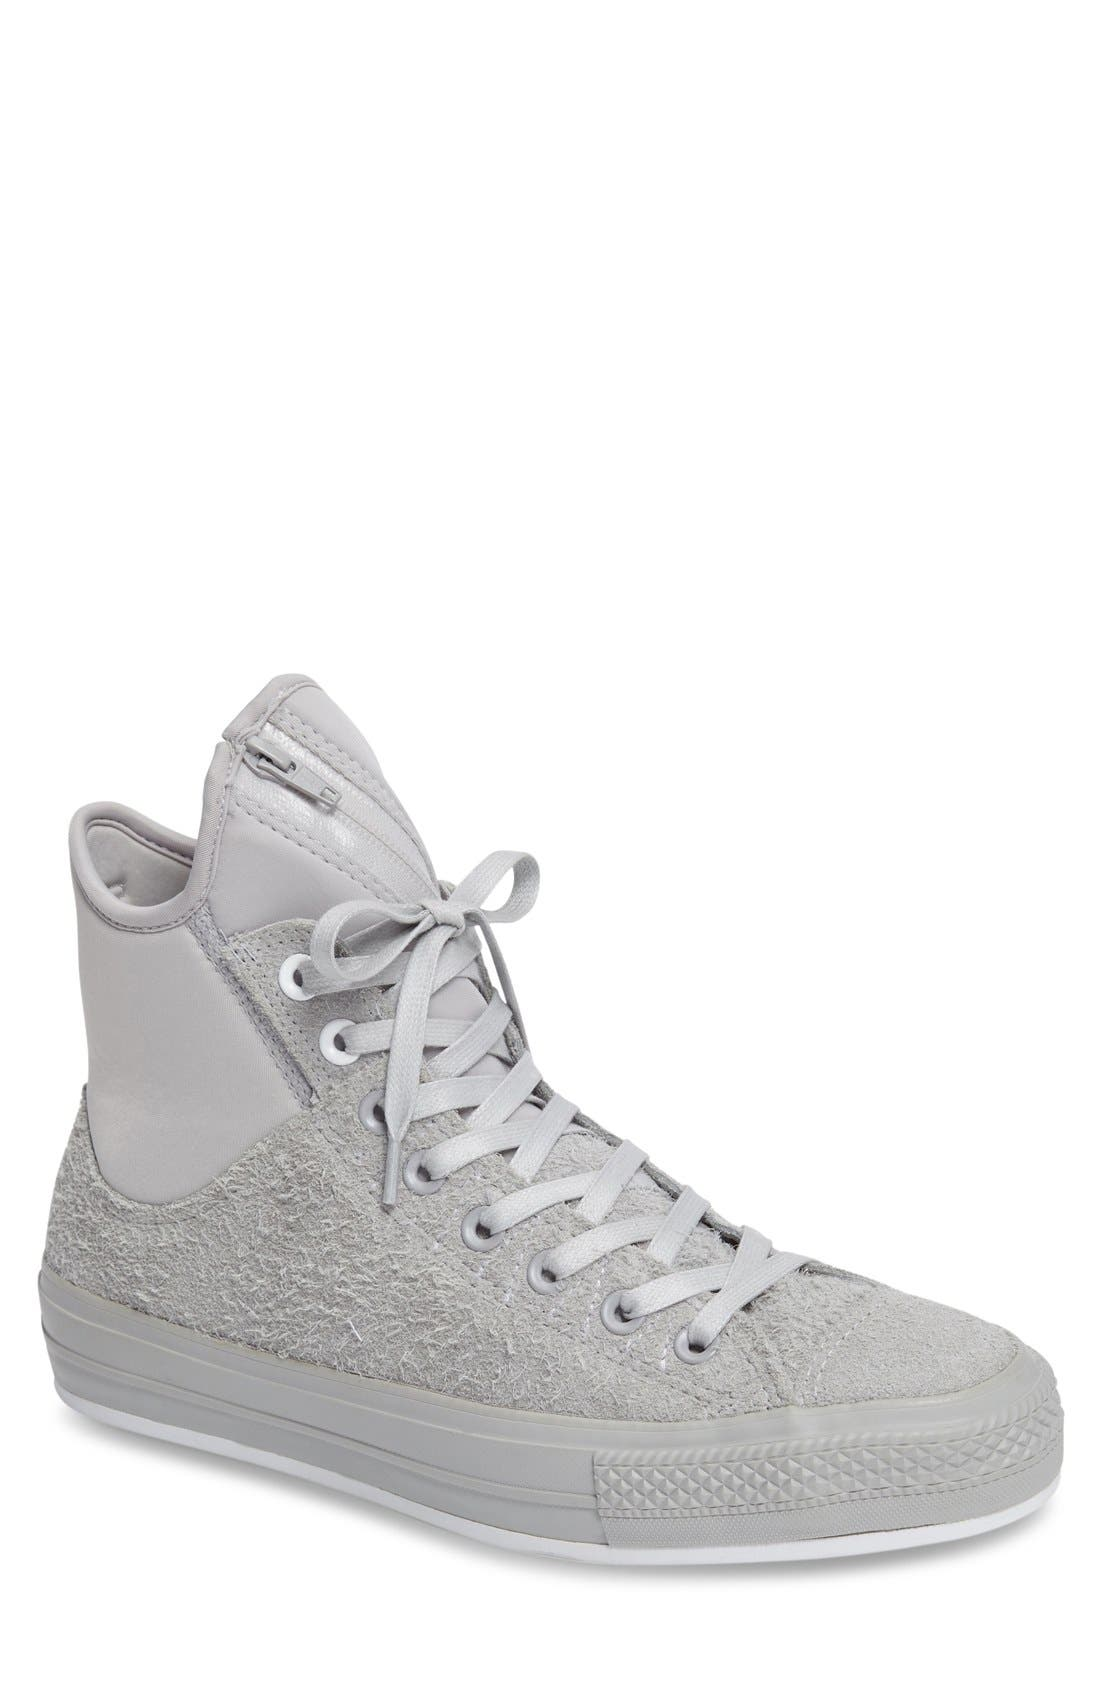 Chuck Taylor<sup>®</sup> All Star<sup>®</sup> MA-1 SE High Top Sneaker,                             Main thumbnail 1, color,                             095